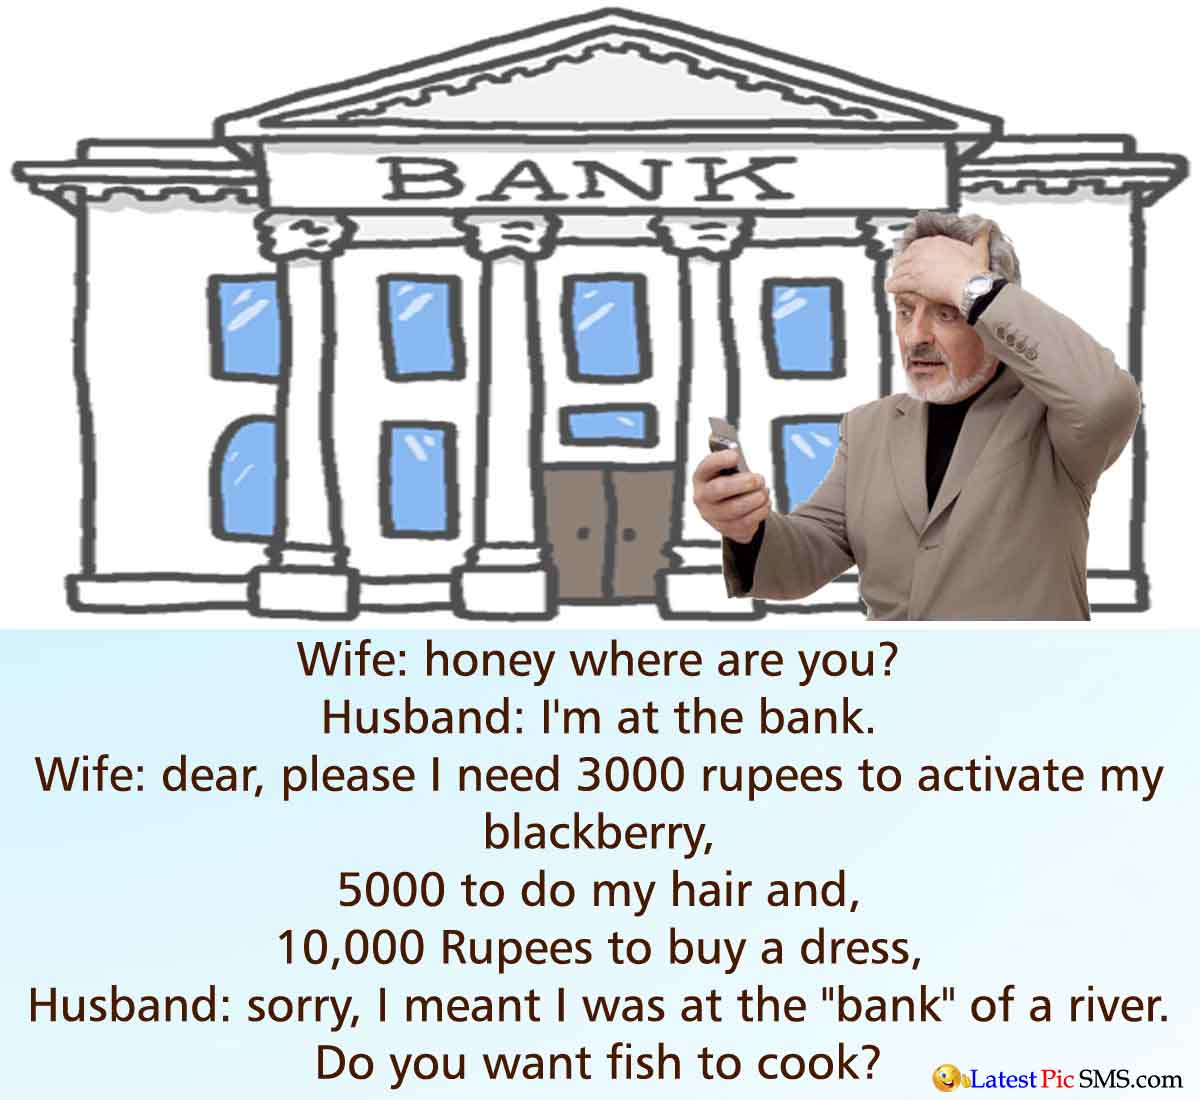 wife husband funny joke on bank - Funny Bank Jokes Photos for Whatsapp and Facebook